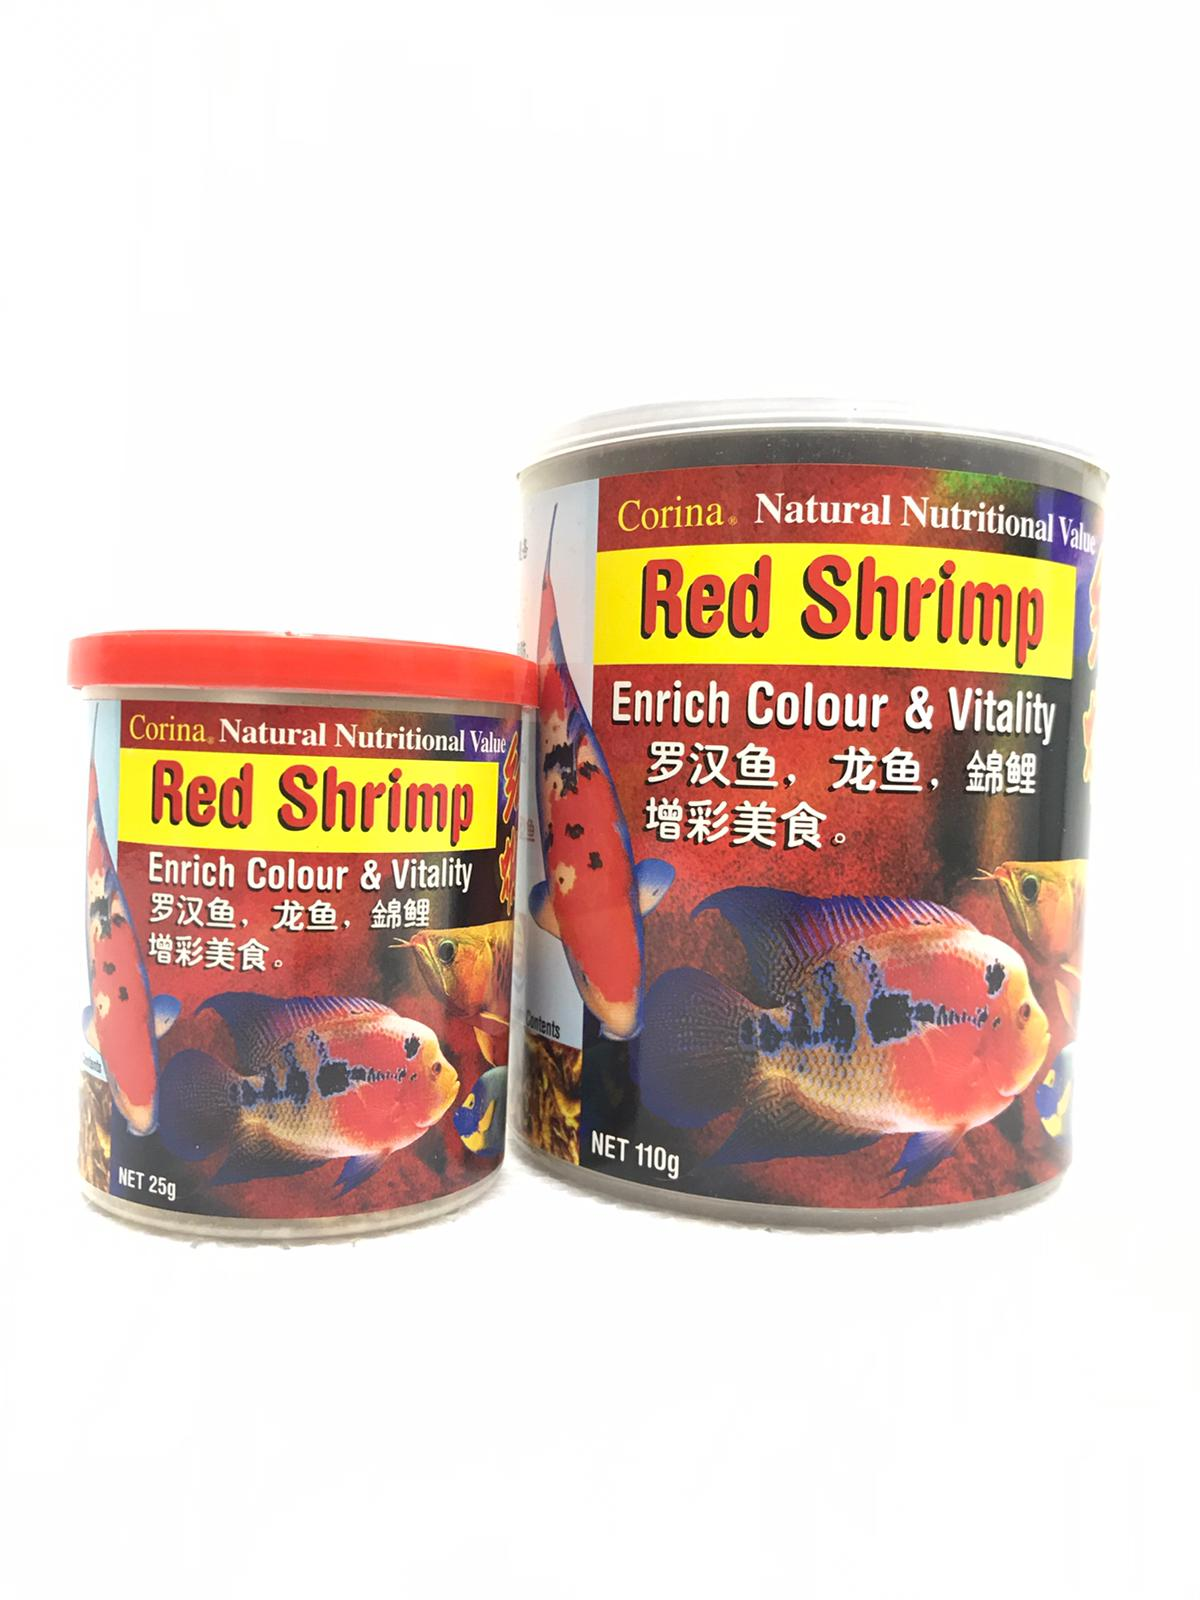 Corina Red Shrimp Enrich Colour And Vitality